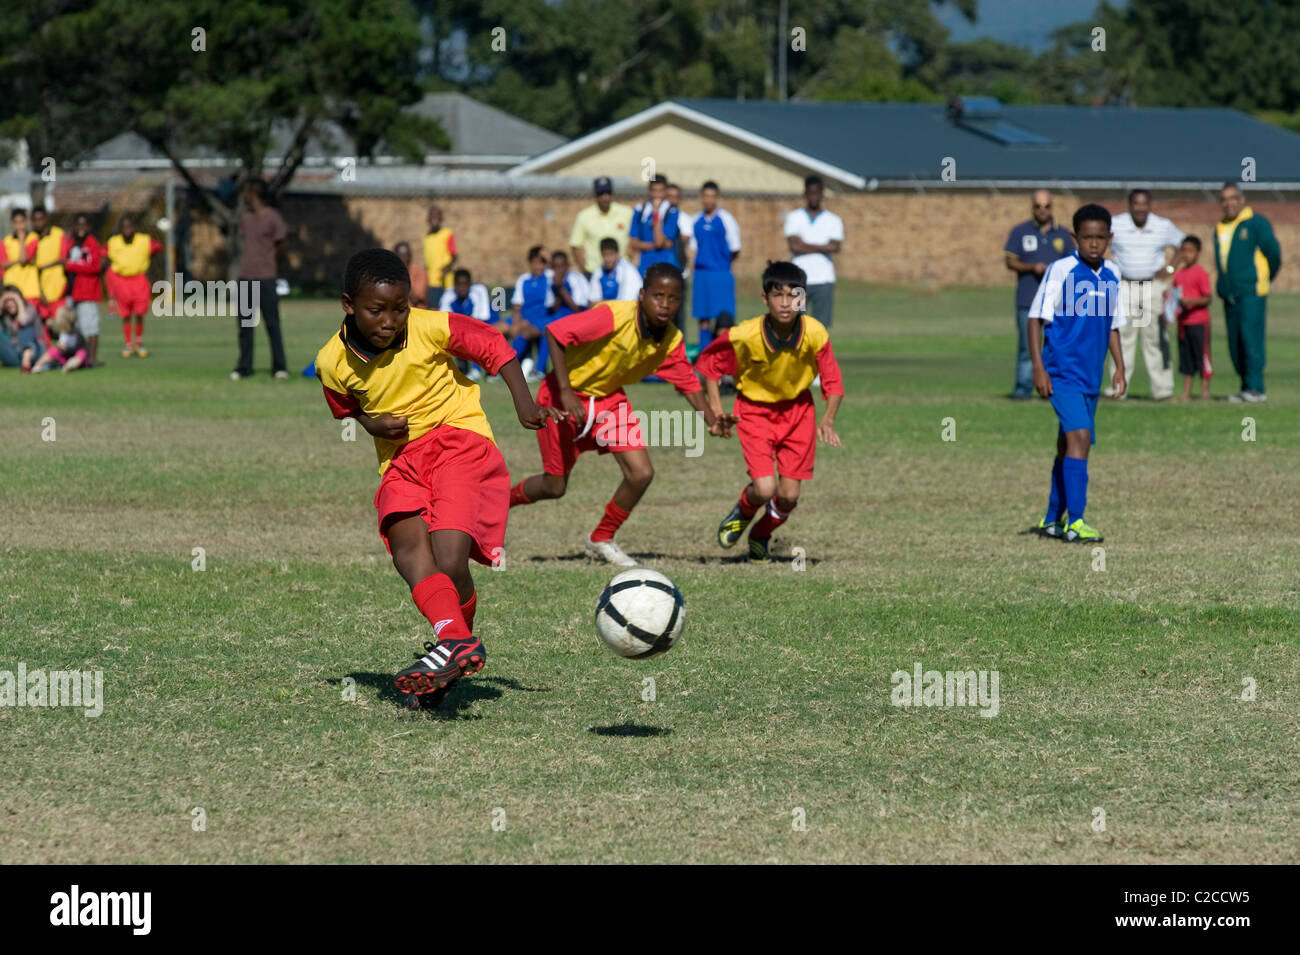 Boys under 13 team play a soccer match, Cape Town, South Africa - Stock Image